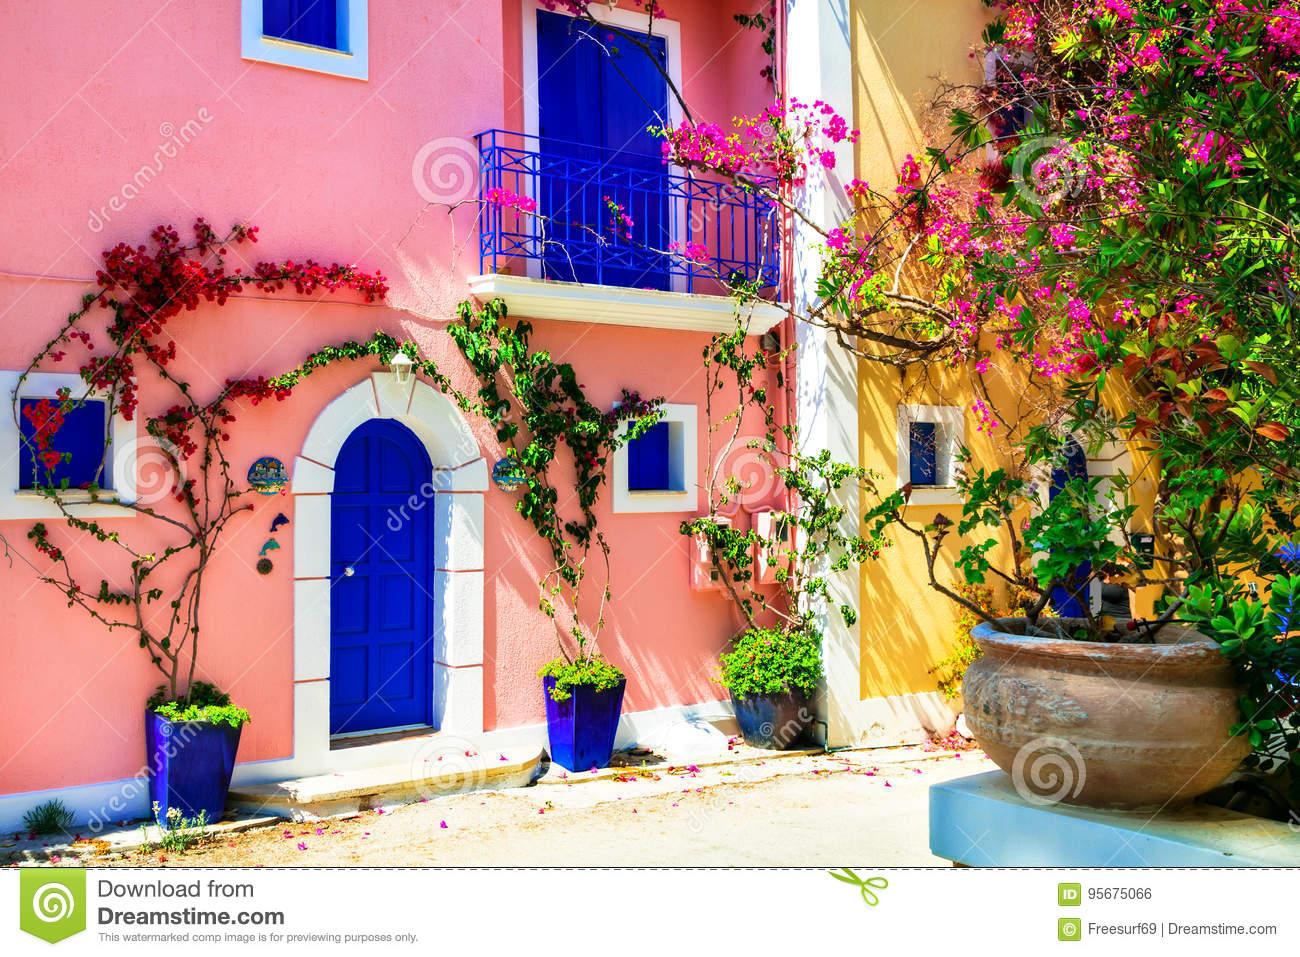 Colorful Greece series - charming streets of Assos village in Kefalonica